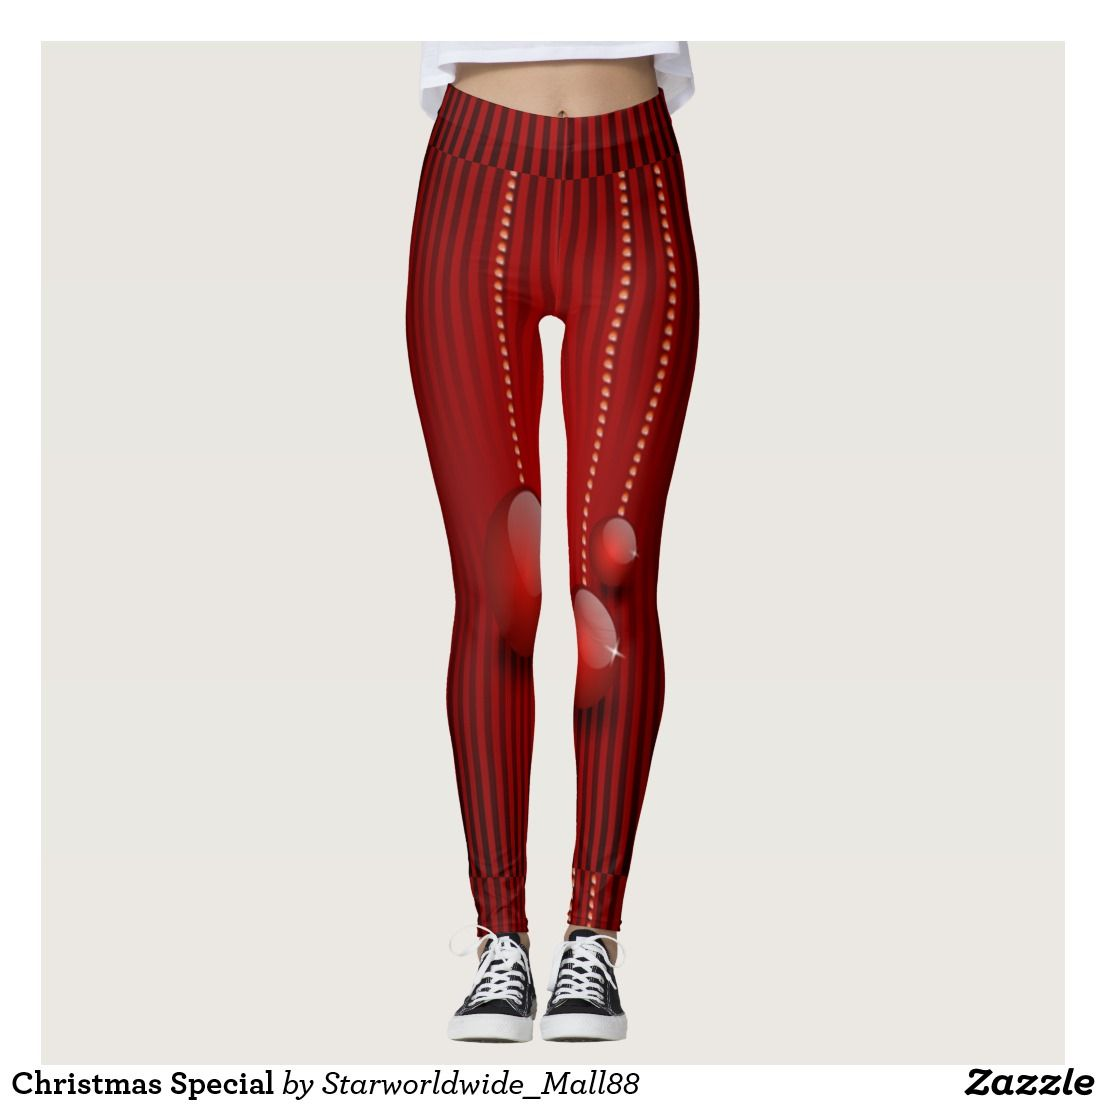 2d71e3085c07cc Christmas Special Hot, Perfect, Cametoe, Are Not Pants, leggings workout, leggings  target, leggings walmart, leggings definition, leggings lululemon, ...